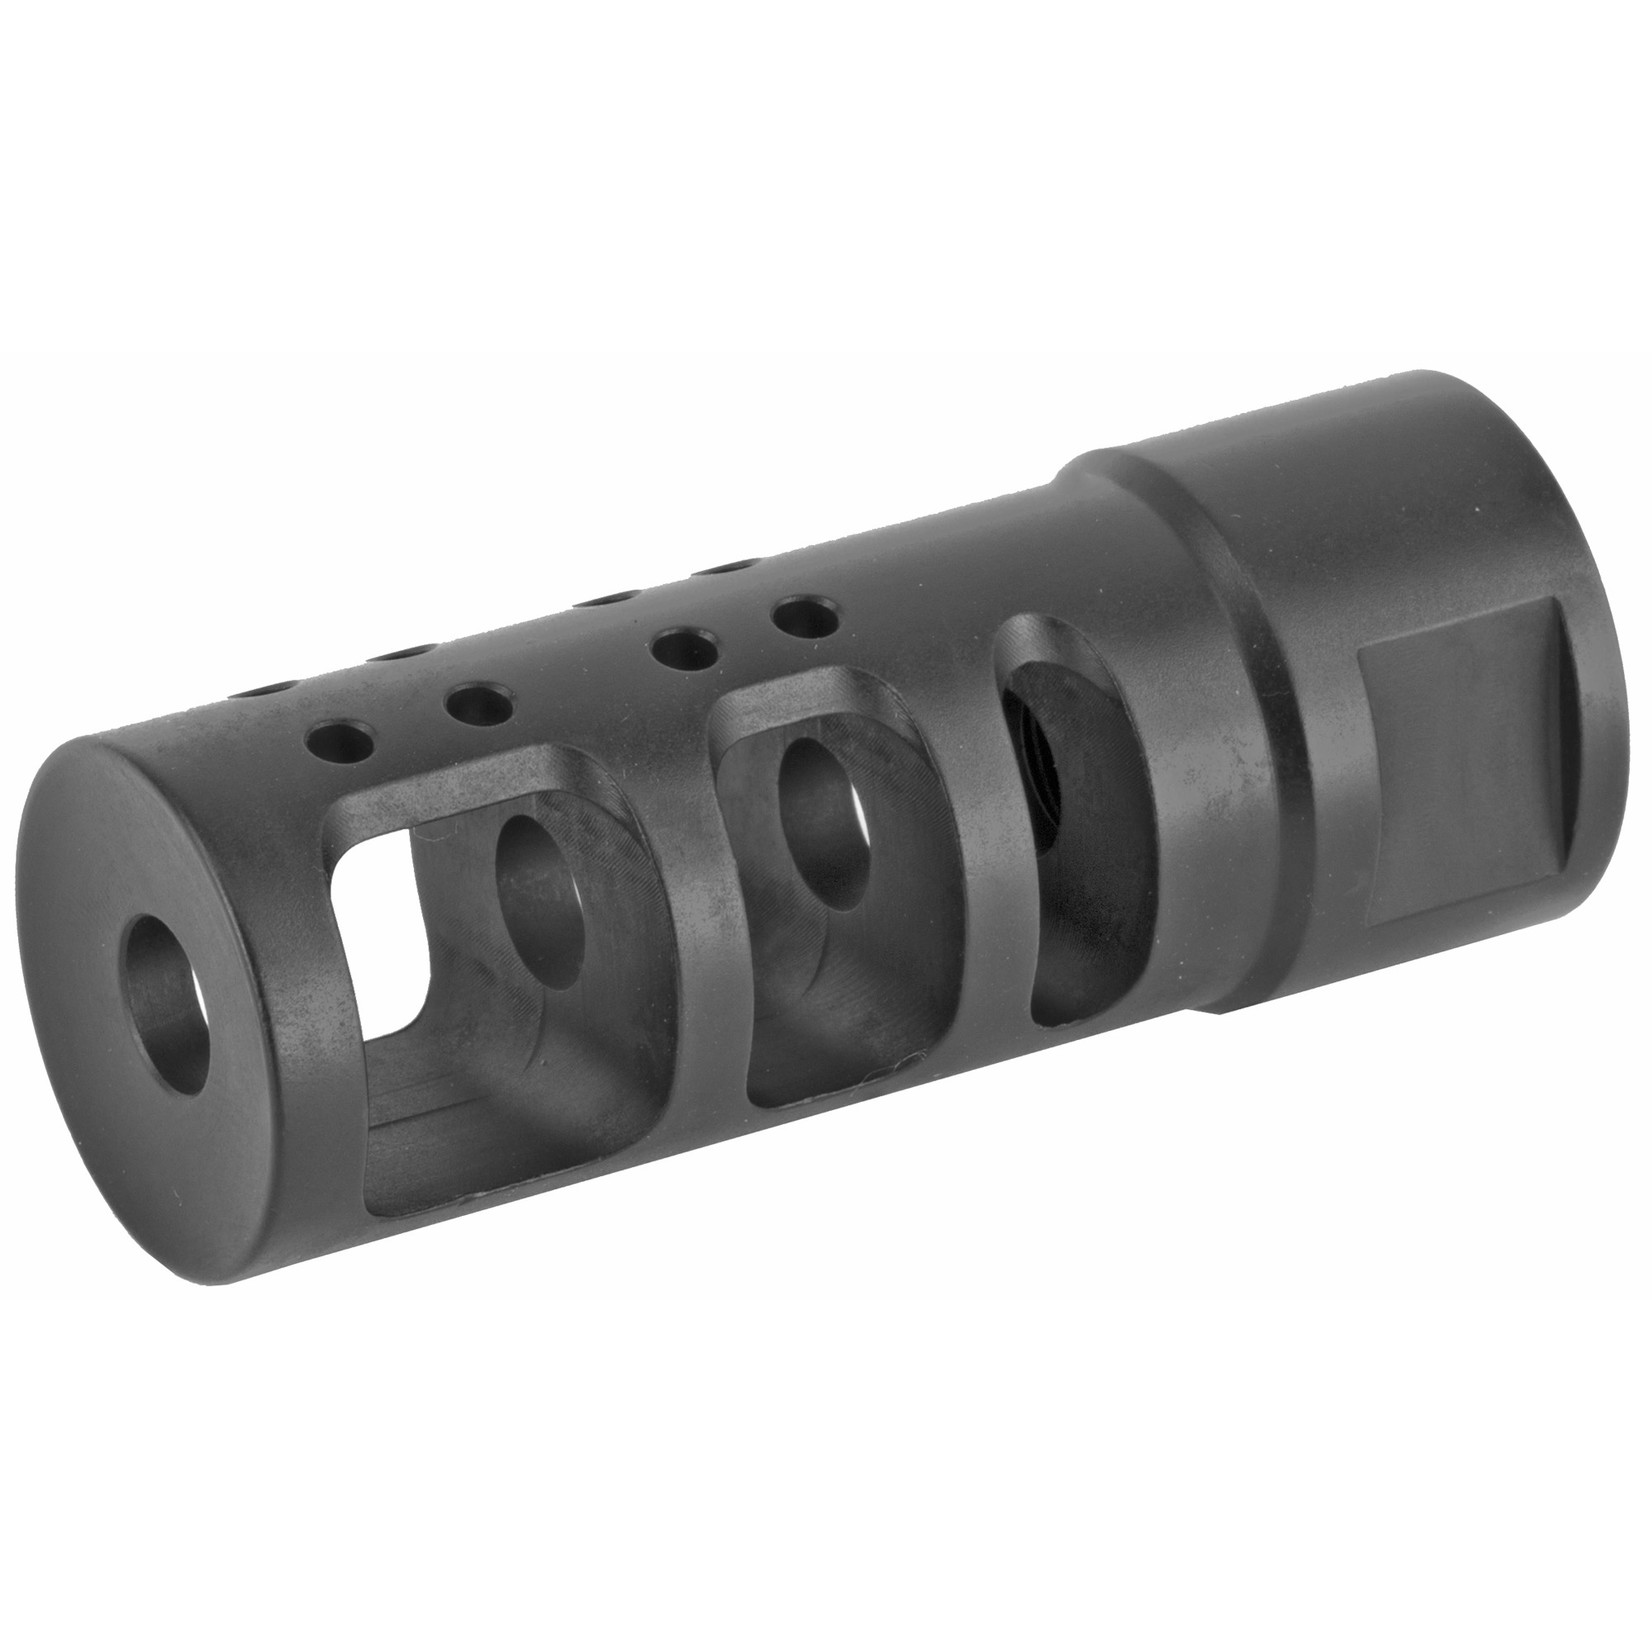 Spike's Tactical SPIKE'S R2 MUZZLE BRAKE 5.56 BLK